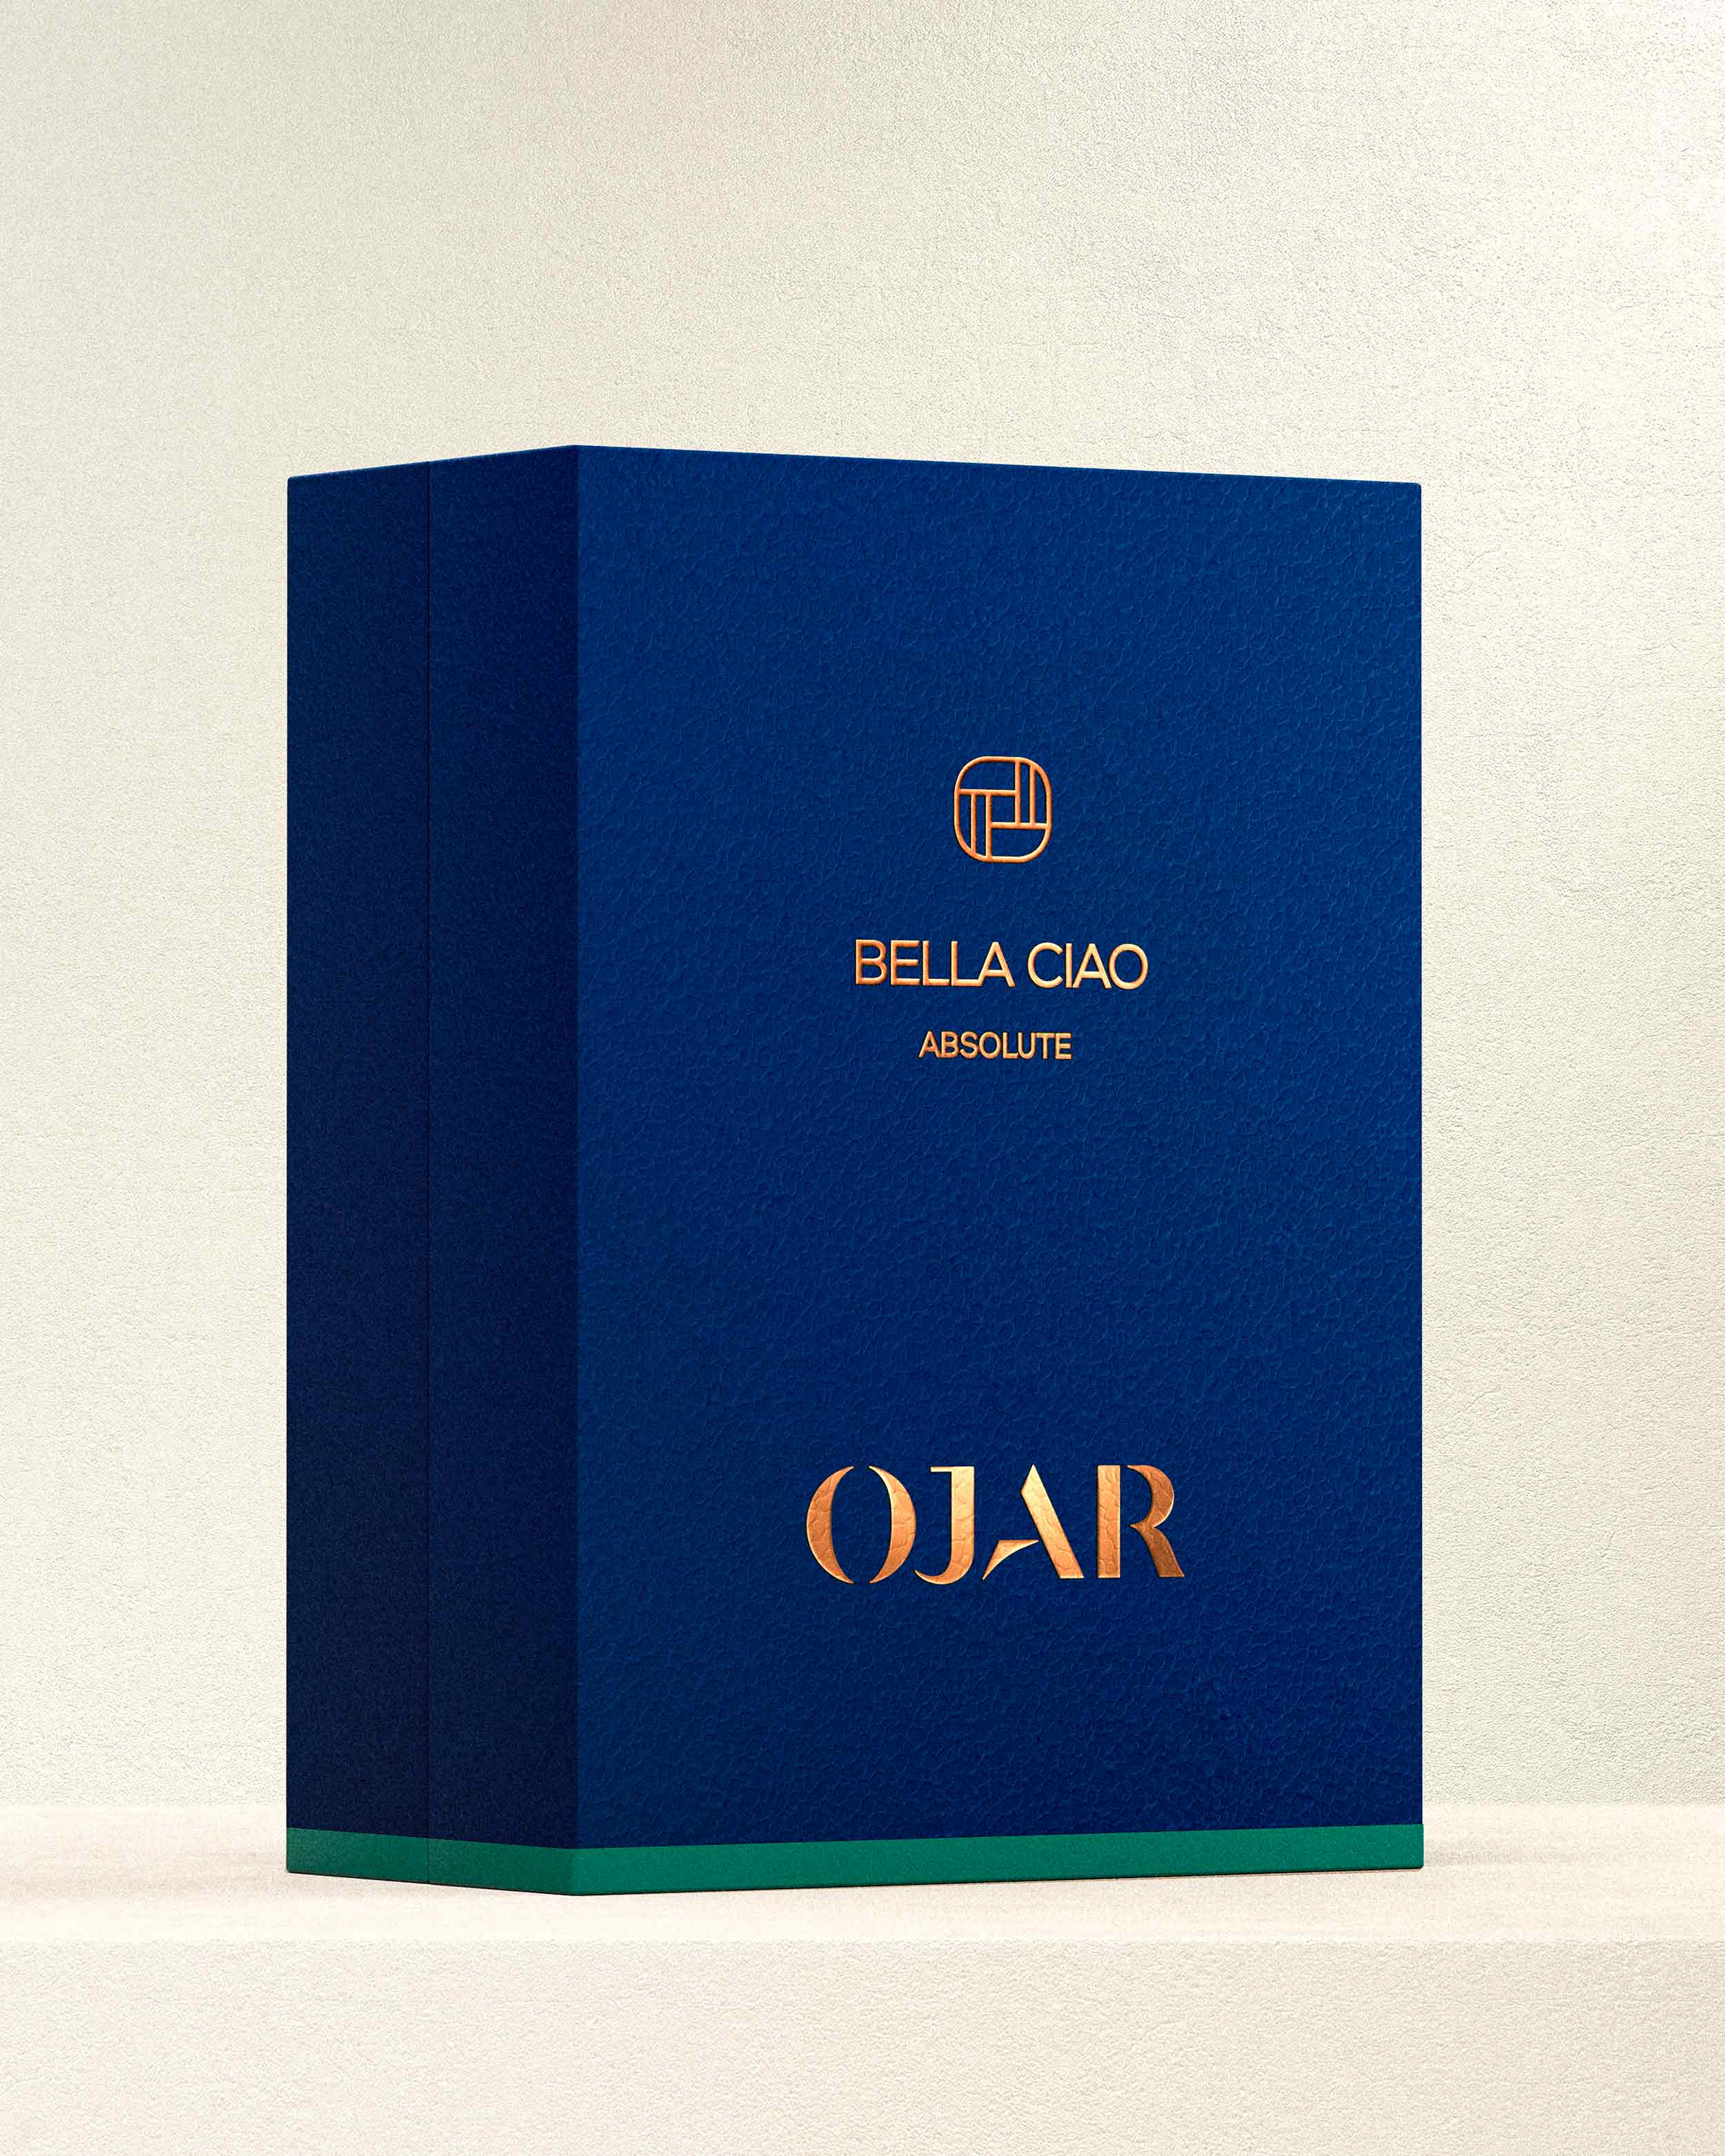 OJAR Absolute Bella Ciao Perfume Pack